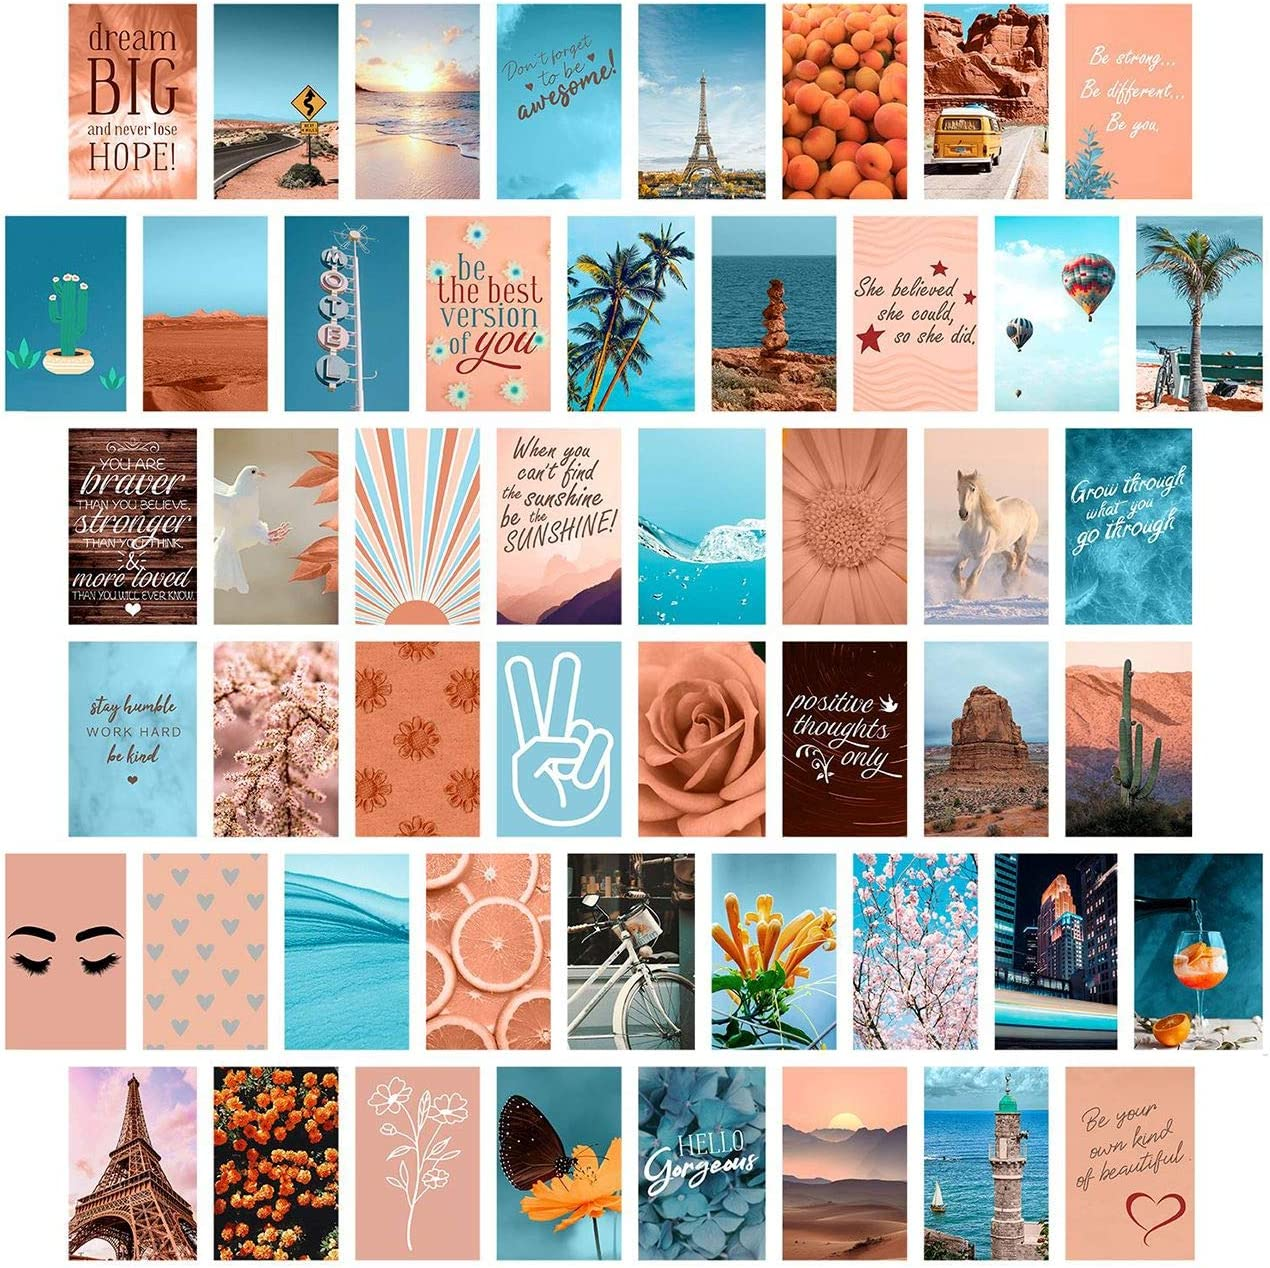 Peach Teal Wall Collage Kit Aesthetic Pictures, Collage Kit for Wall Aesthetic, Aesthetic Pictures for Wall Collage, Room Decor for Teen Girls, Wall Collage Kit, Peach Teal Collage Kit, 50pcs 4x6 inch